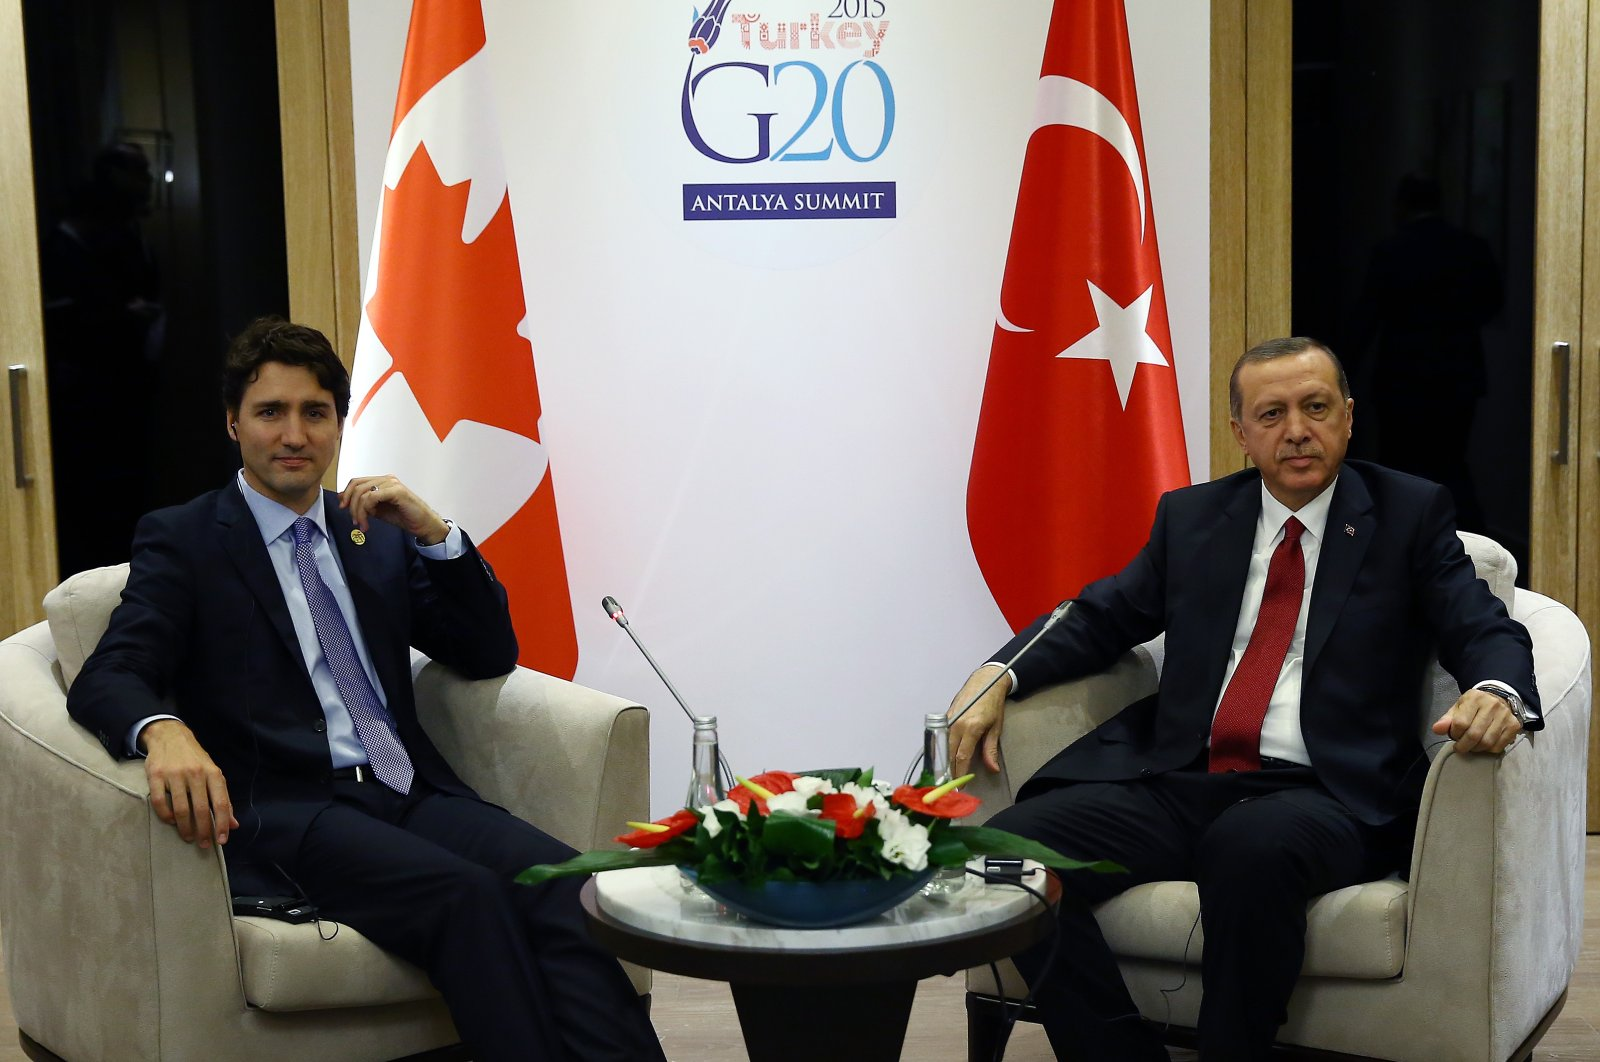 Turkish President Recep Tayyip Erdogan, right, meets with Canada's Prime Minister Justin Trudeau at the G-20 summit in Antalya, Turkey, Monday, Nov. 16, 2015. (AA Photo)